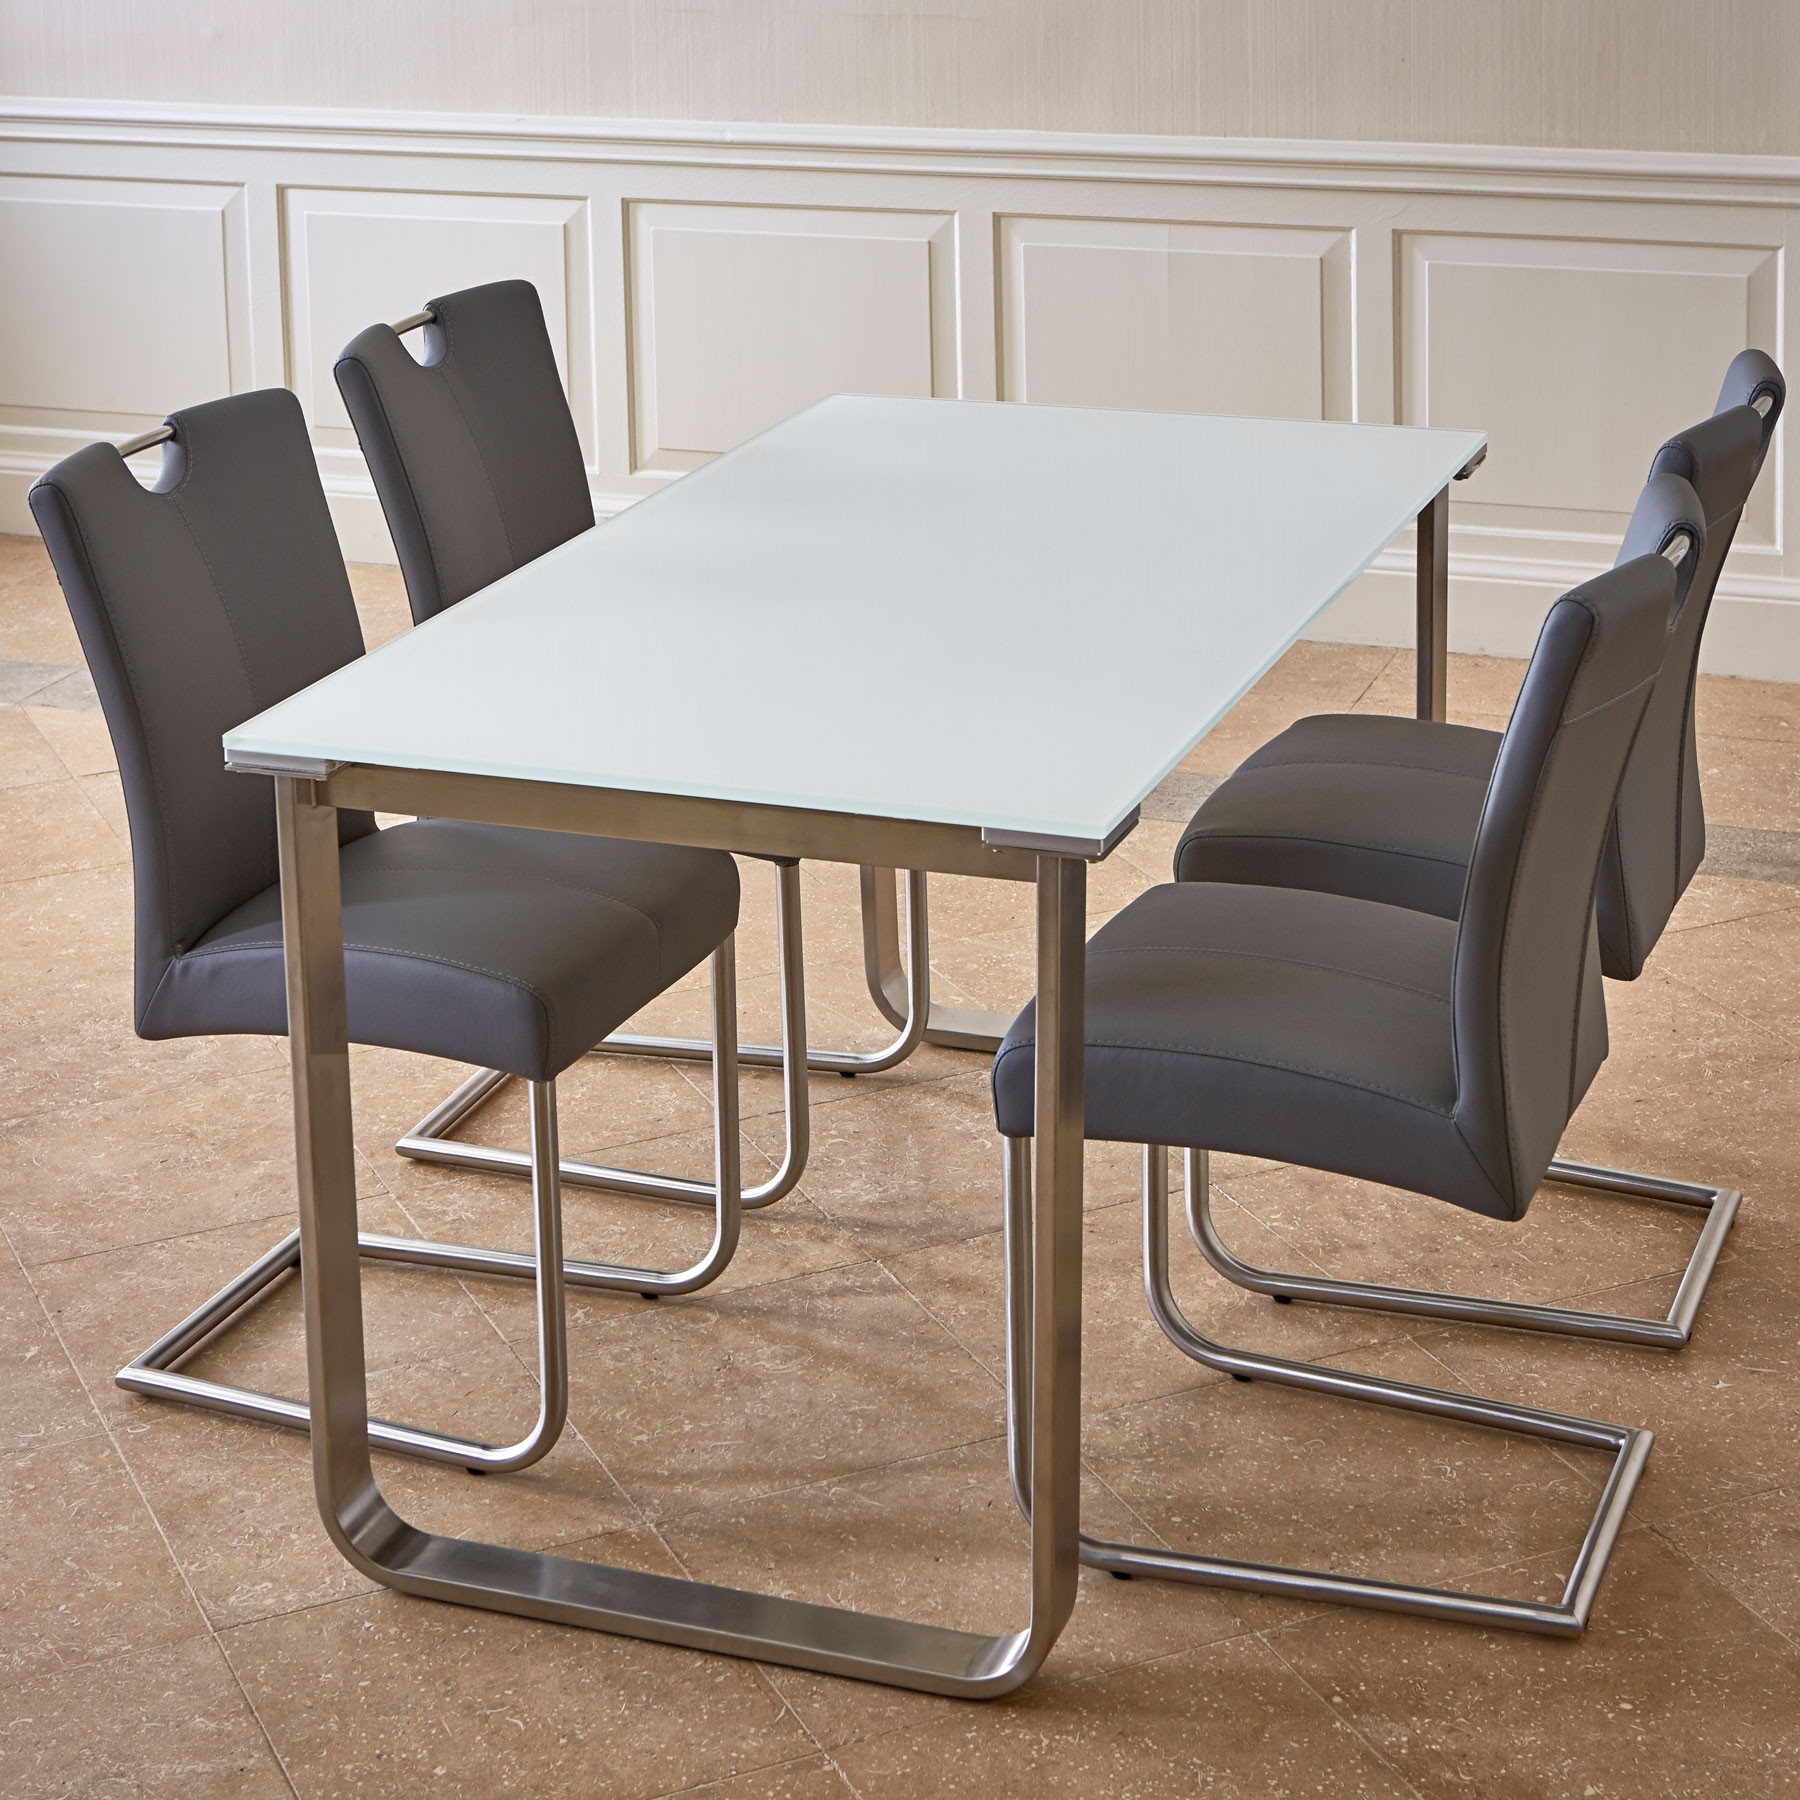 White Glass Dining Tables And Chairs With Preferred Pluto White Glass Dining Table & 4 Chairs (View 9 of 25)